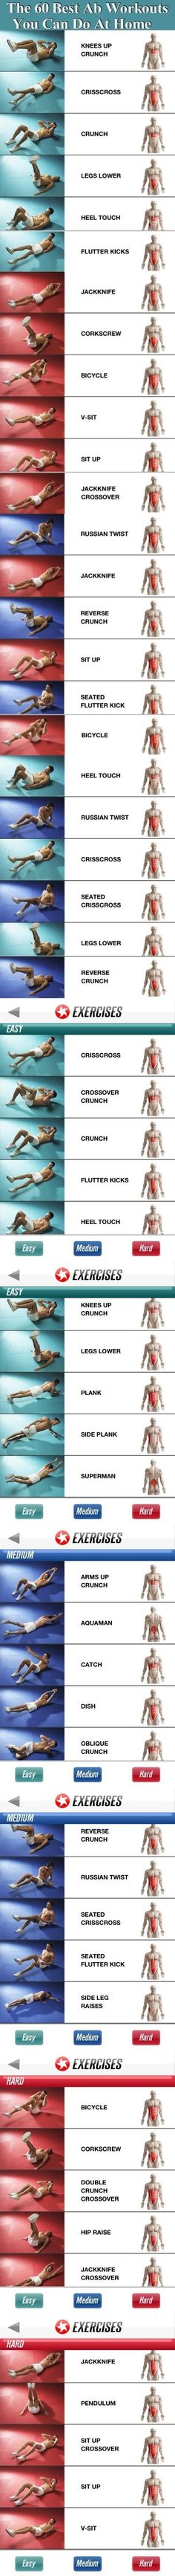 The 60 Best Ab Workouts You Can Do From Home abs fitness exercise home exercise diy exercise routine working out ab workout 6 pack workout routine exercise routine